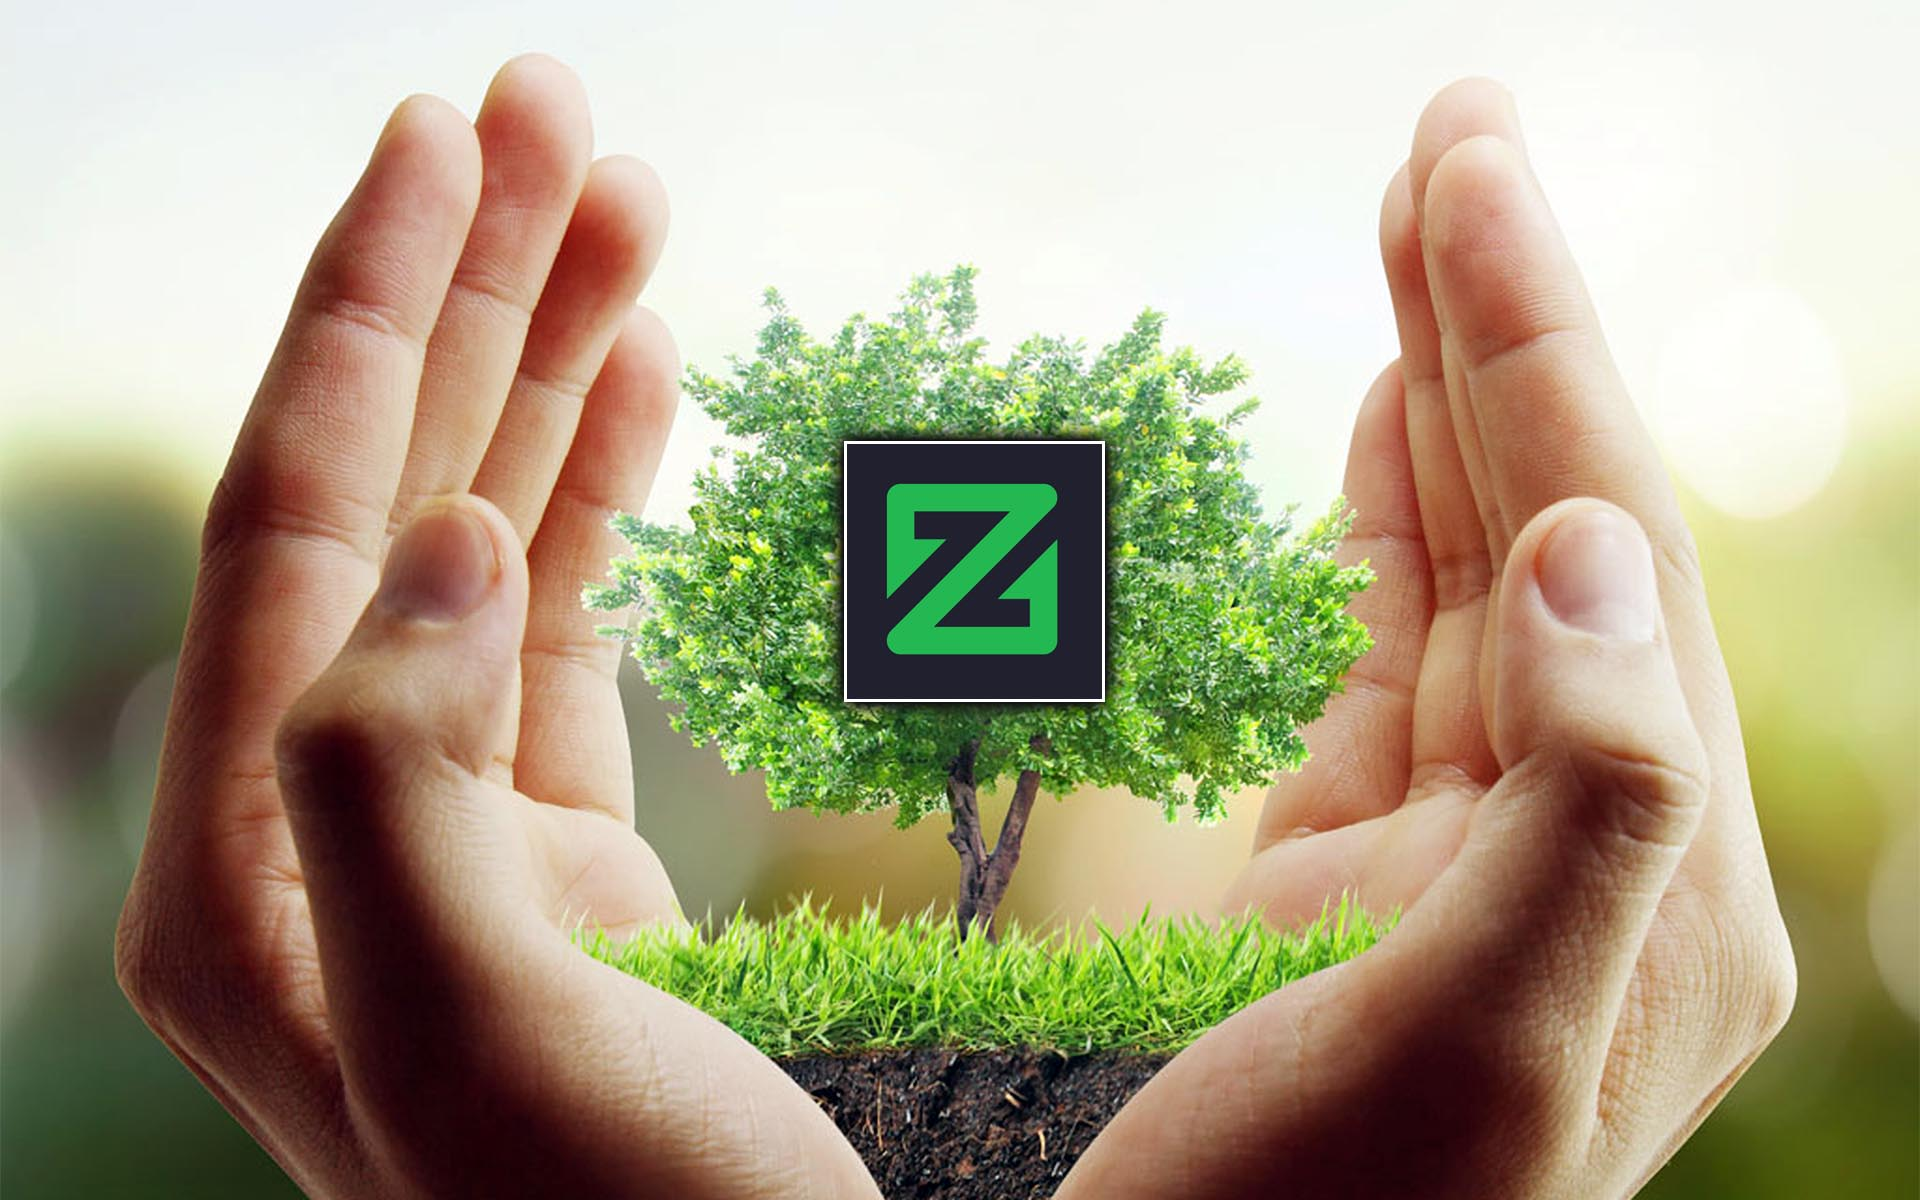 How to get Zcoin for free?